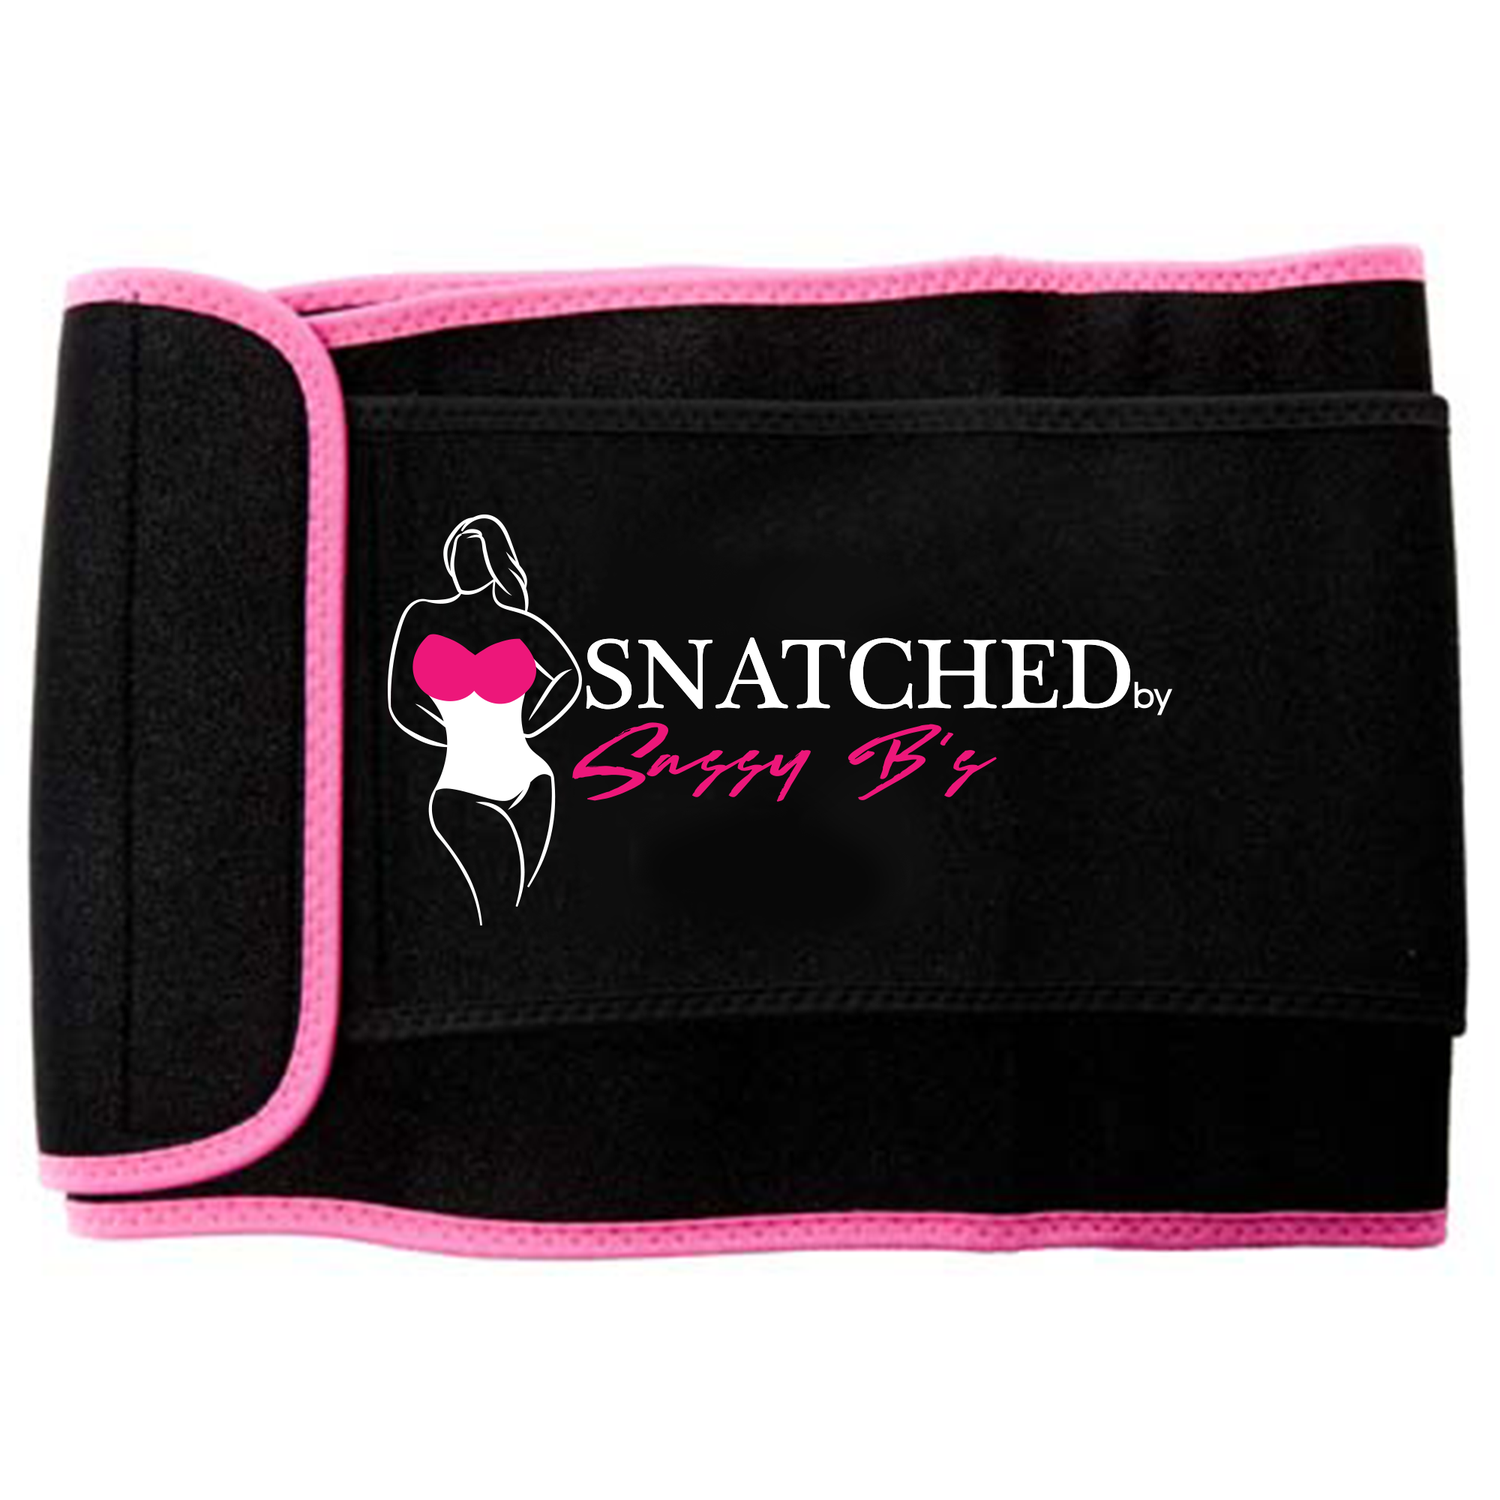 Image of SNATCHED by Sassy B's